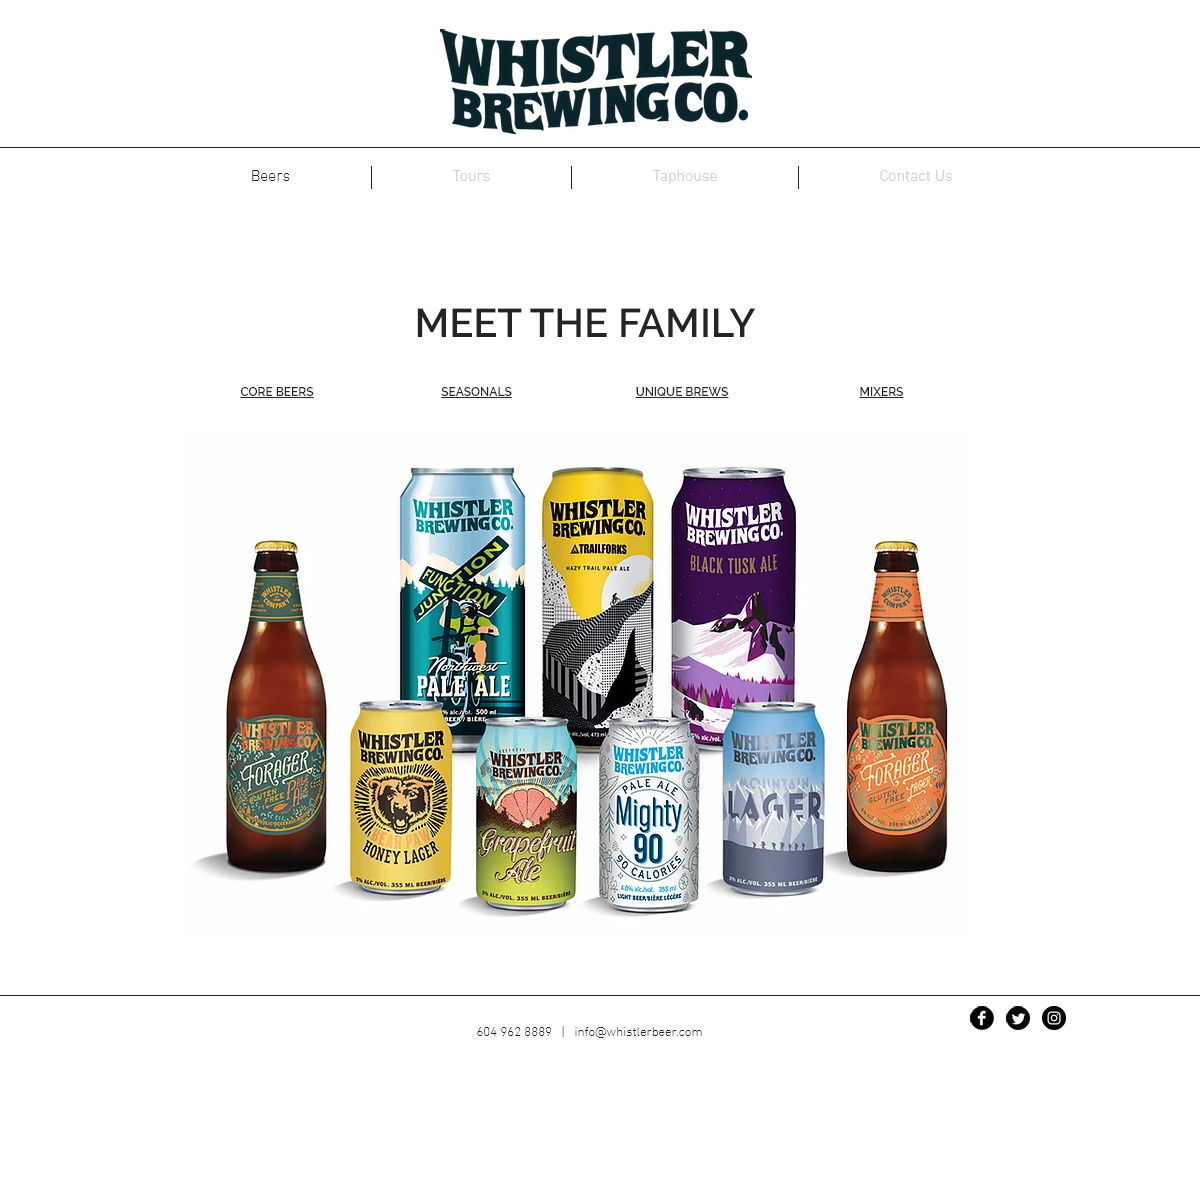 Beers - Whistler Brewing Company